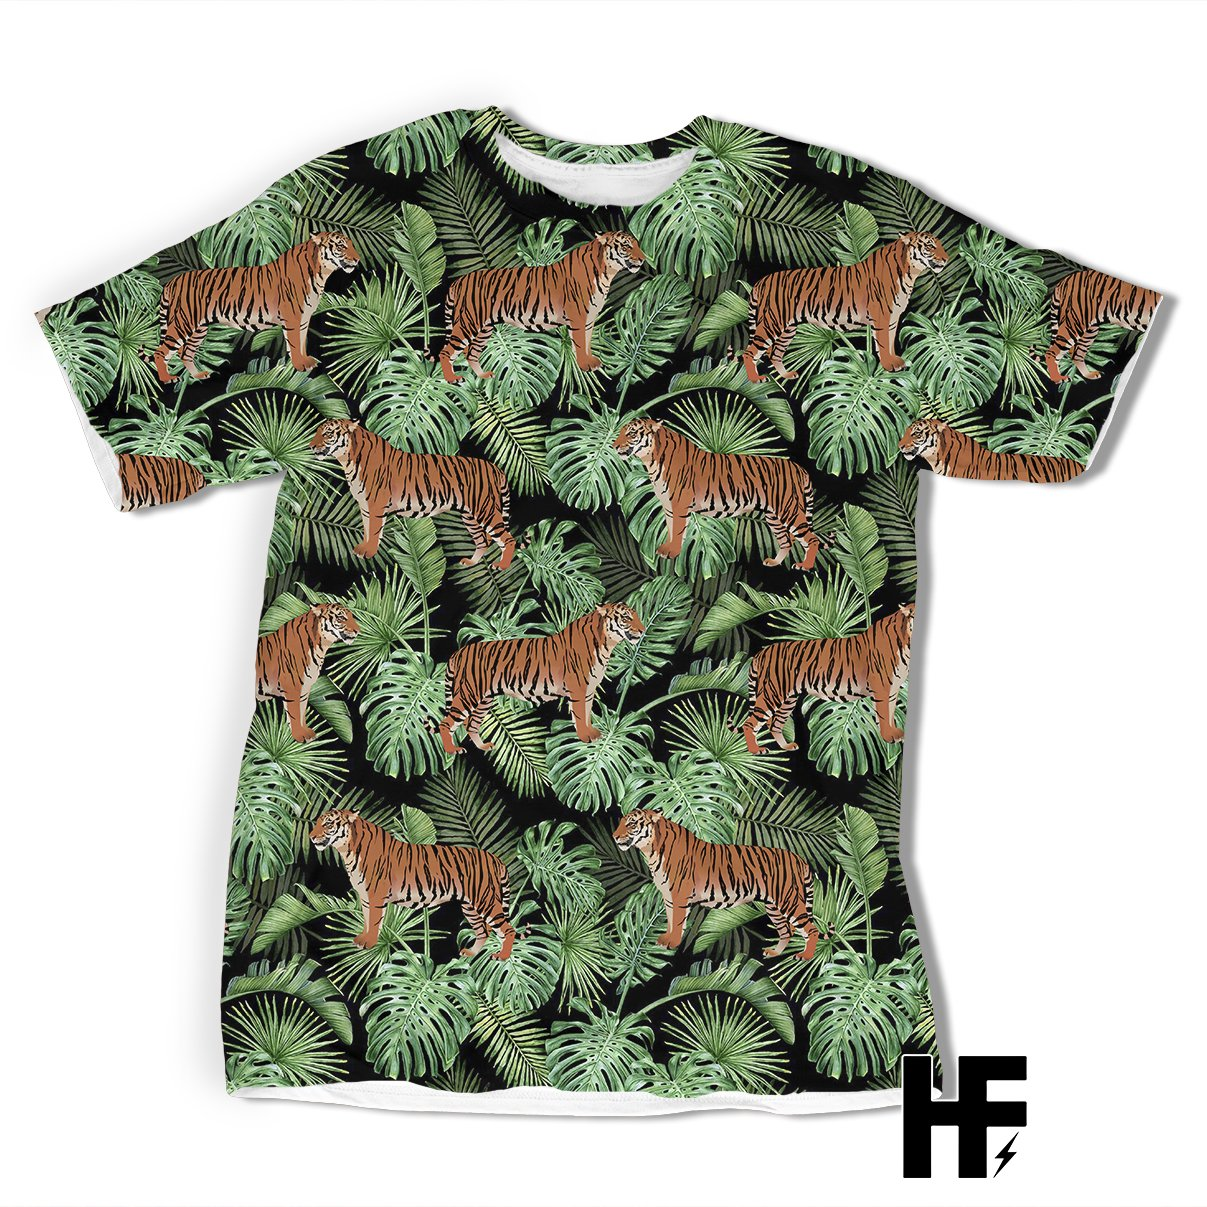 Jungle Tiger EZ10 1003 All Over T-Shirt